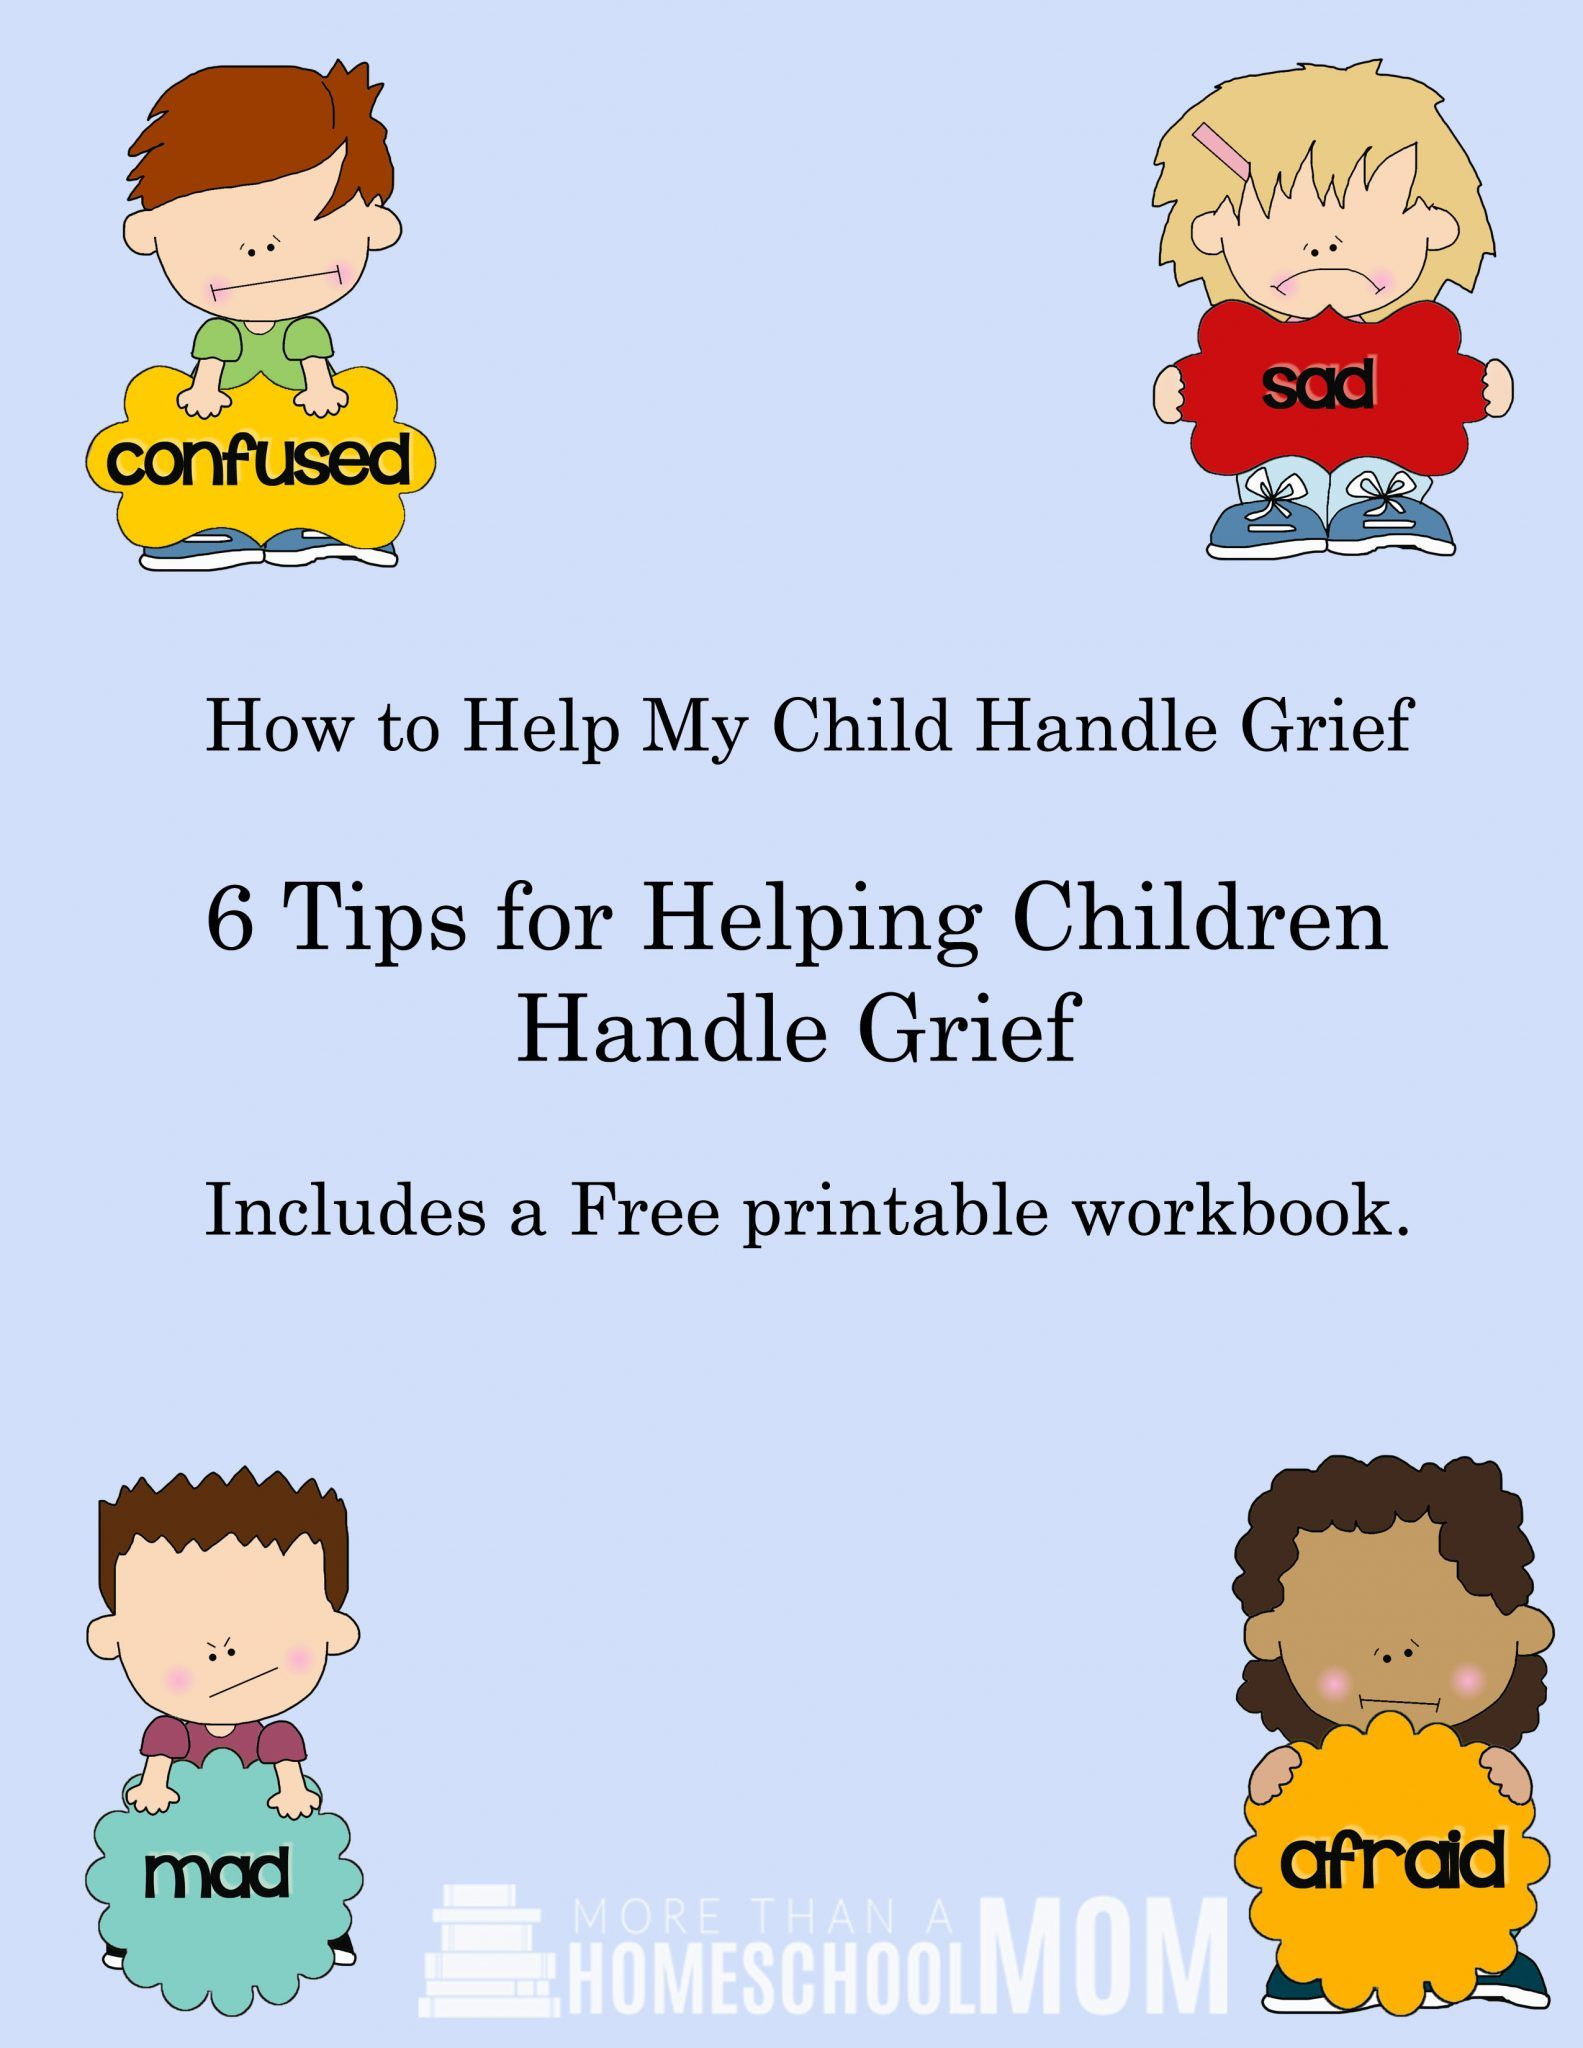 How To Help My Child Handle Grief